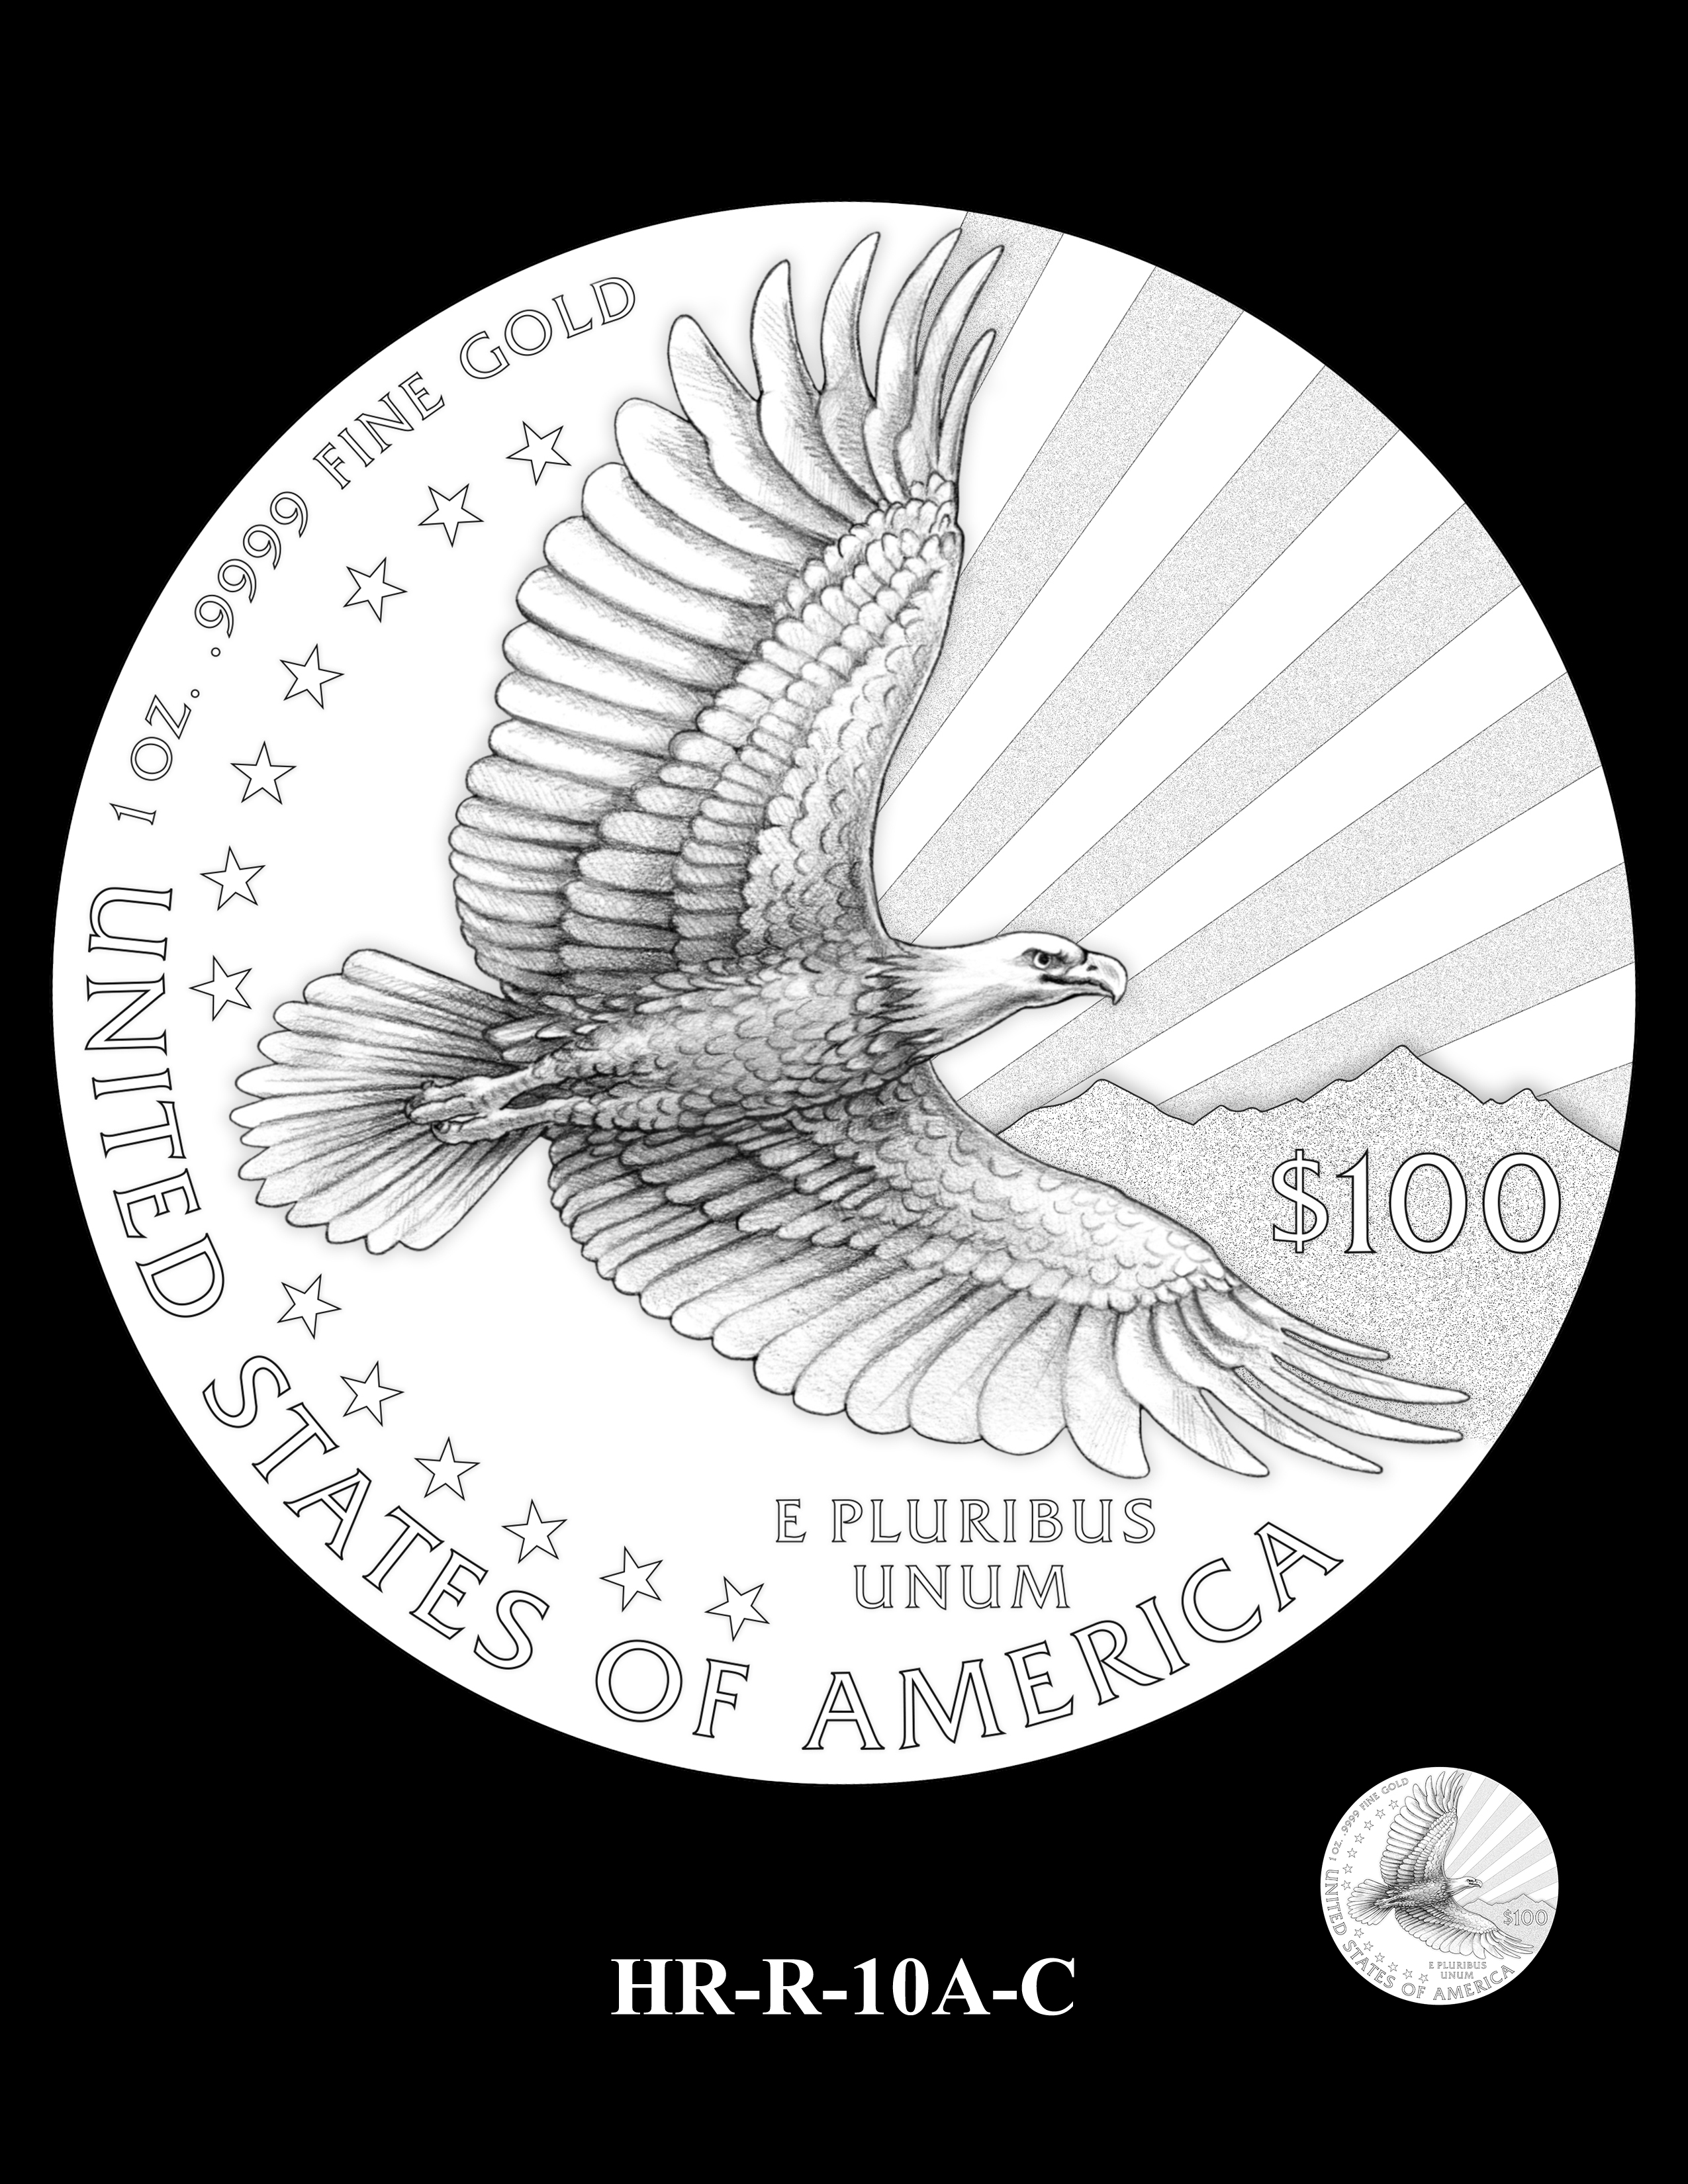 HR-R-10A-C - 2017 American Liberty High Relief Gold Coin and Silver Medal Program